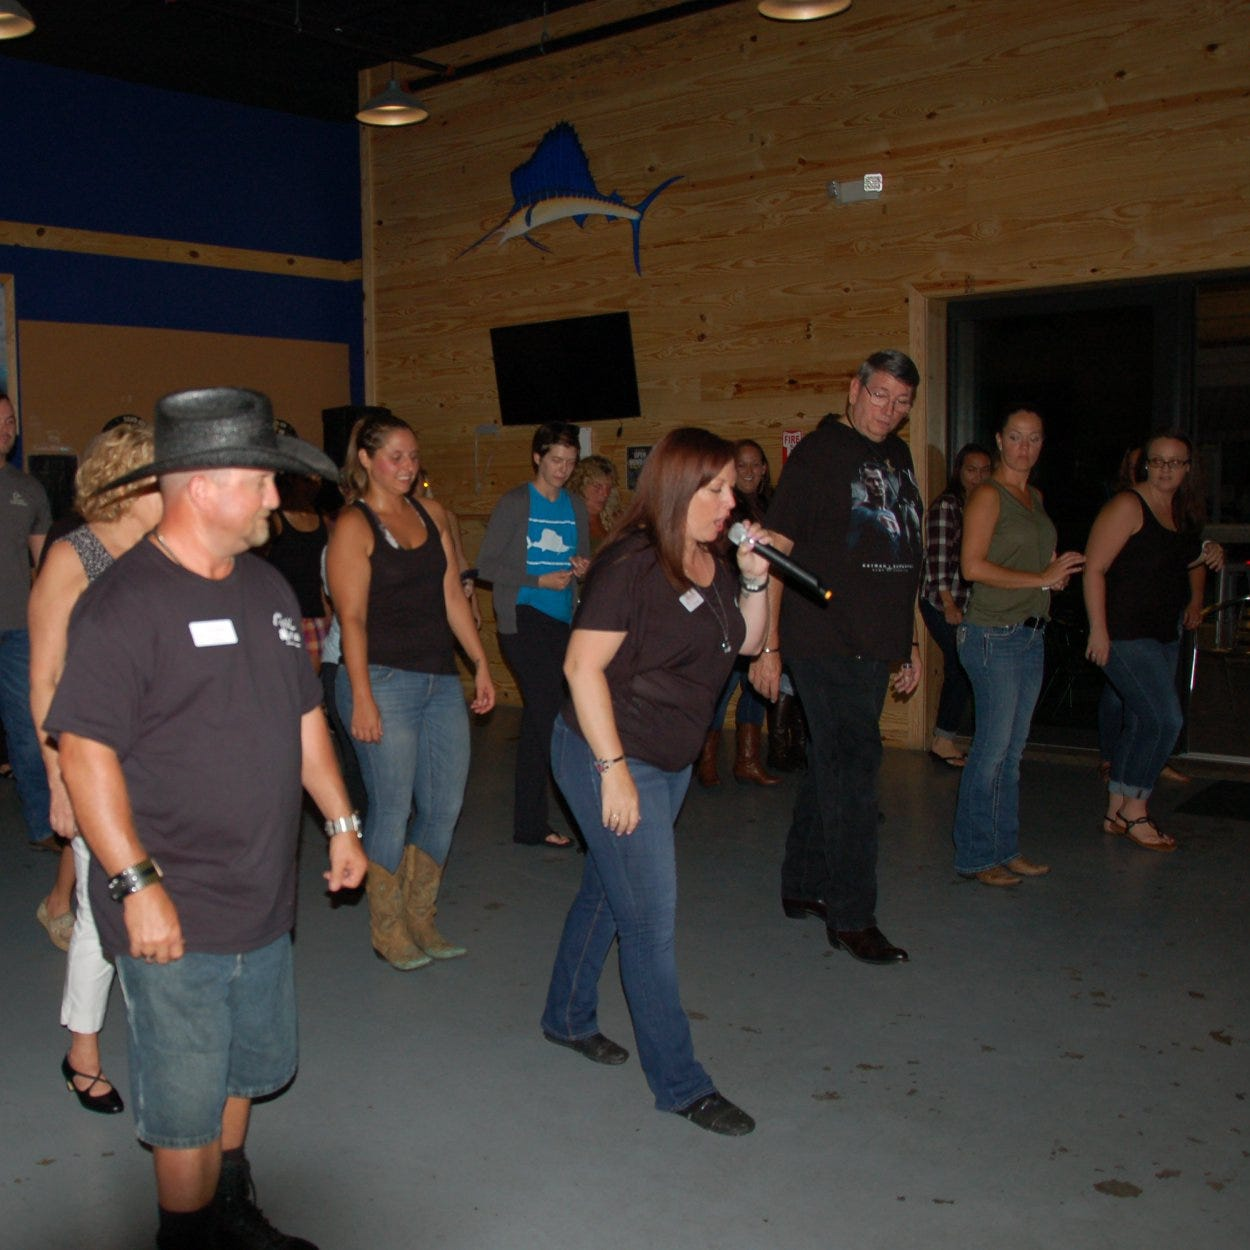 Line dancing isn't just about country music anymore | Laurie's Stories